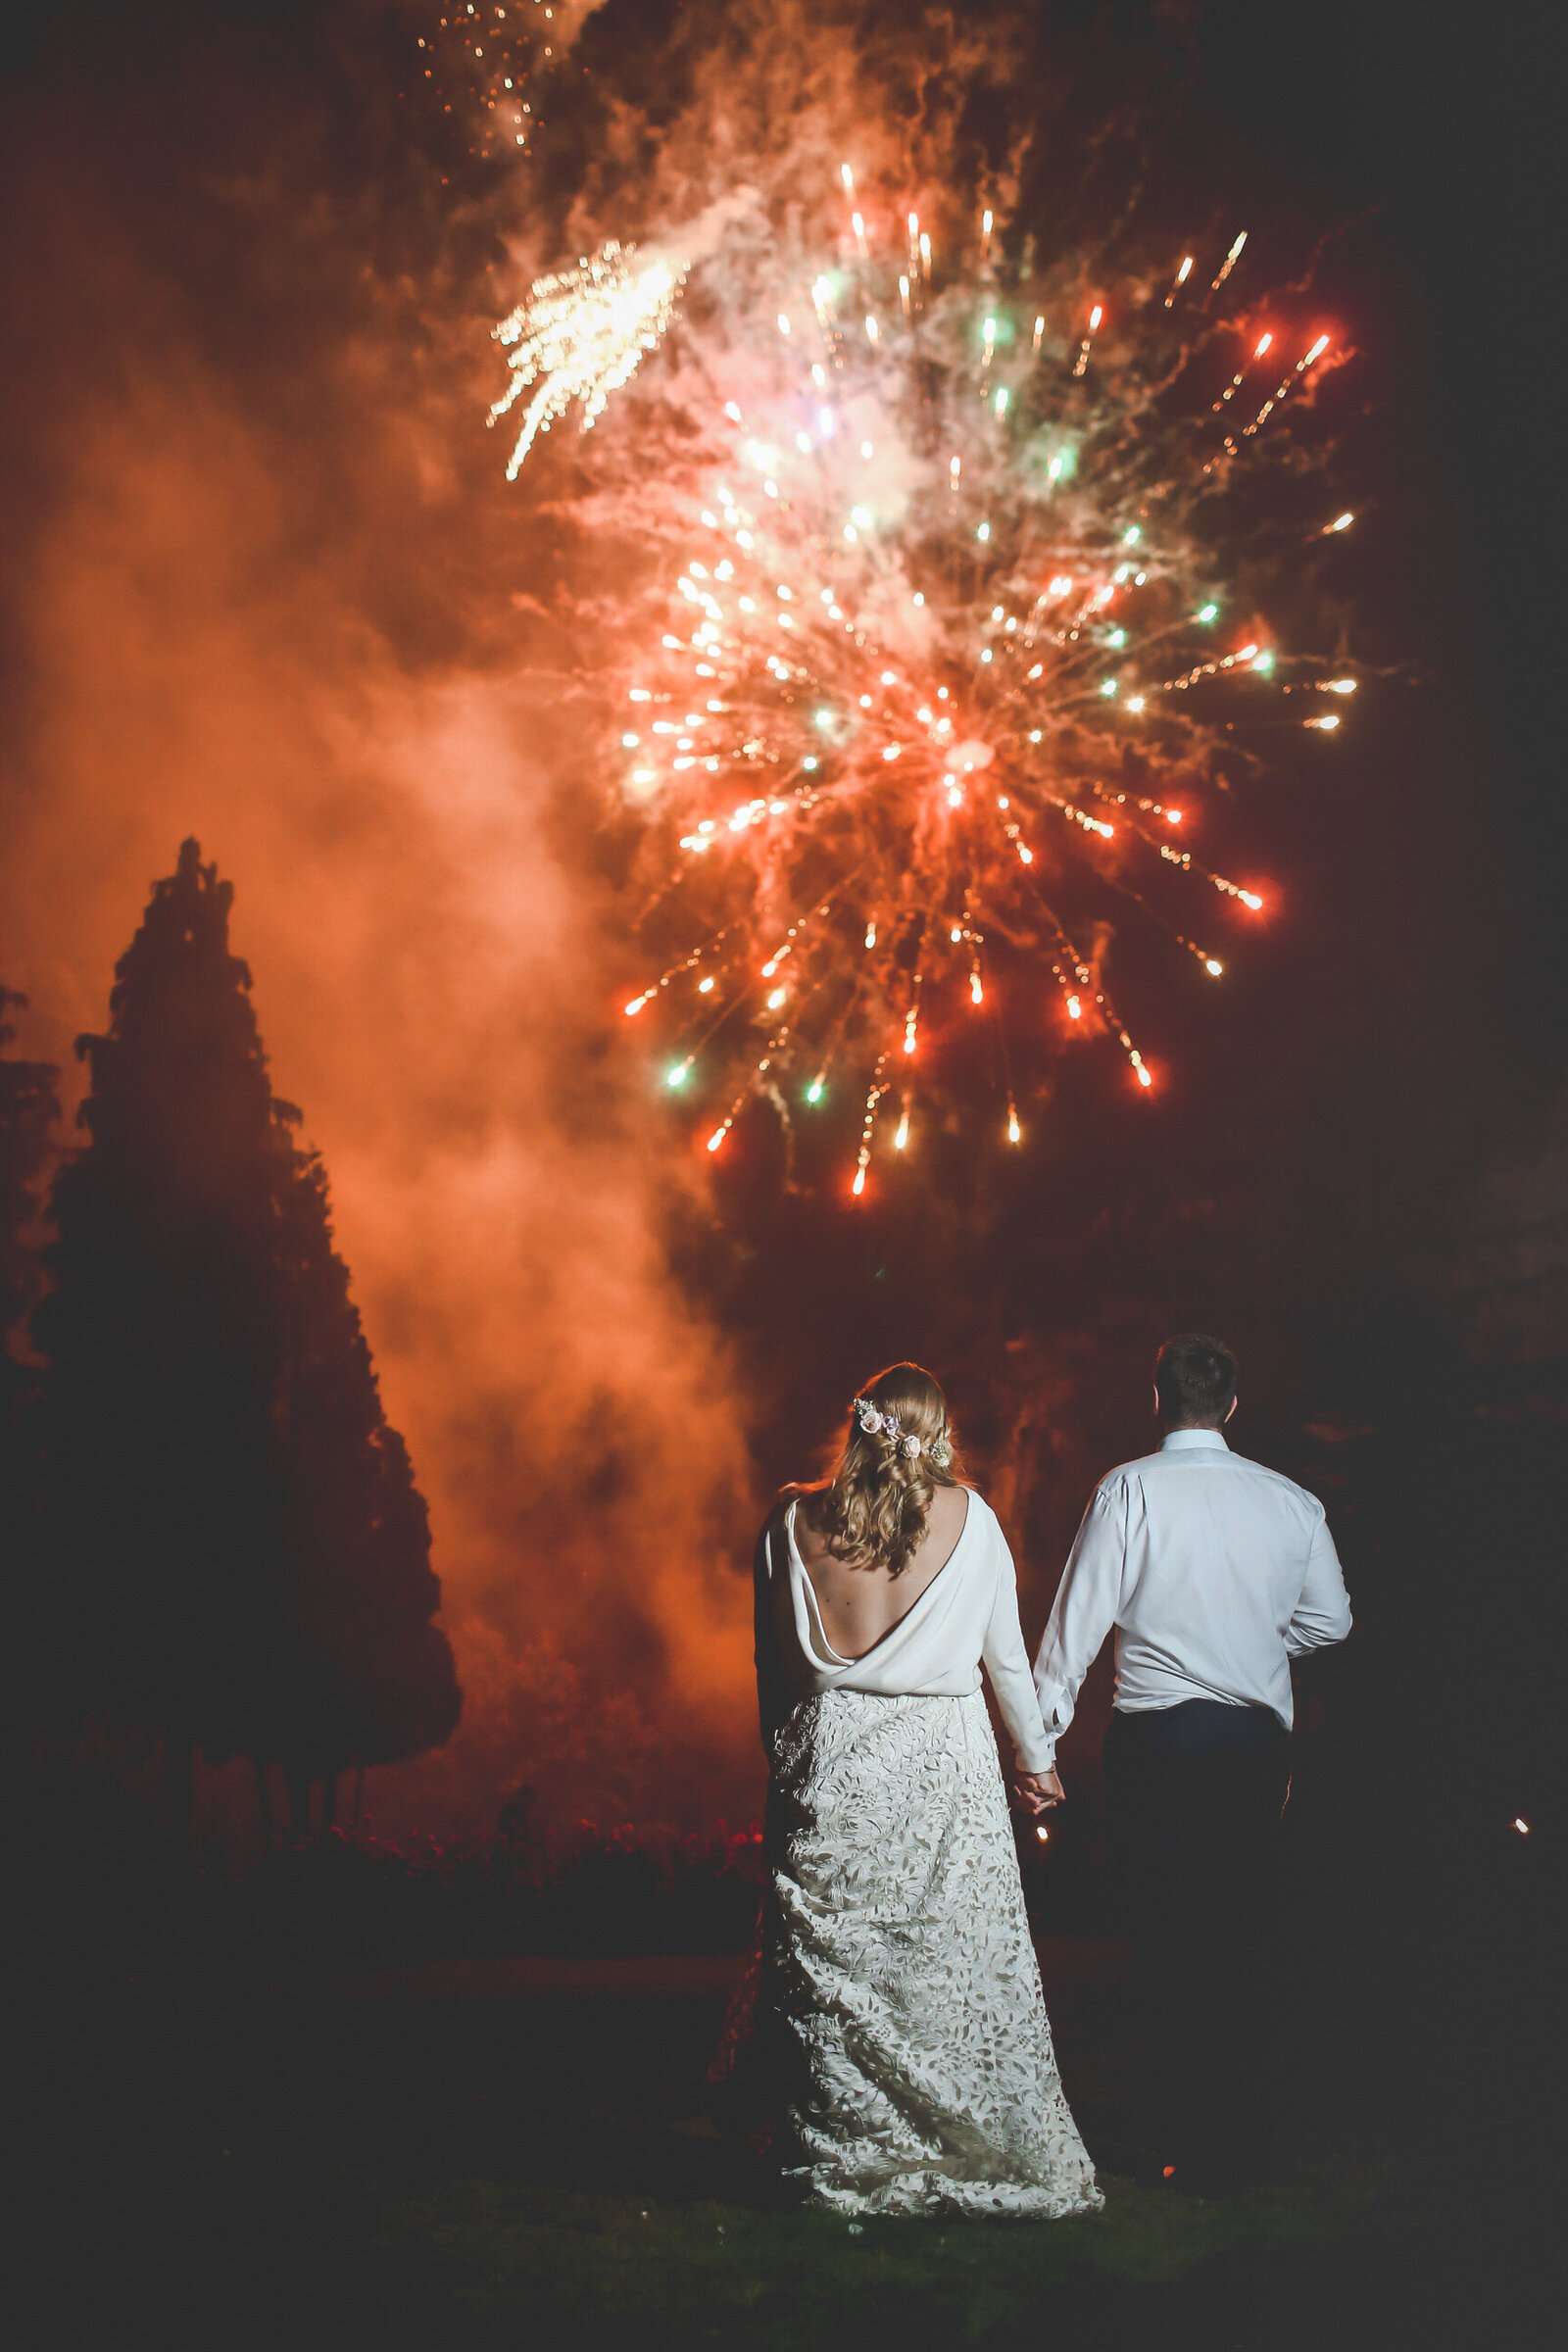 SURREY-AT-HOME-WEDDING-GARDEN-FIREWORKS-FUN-0075